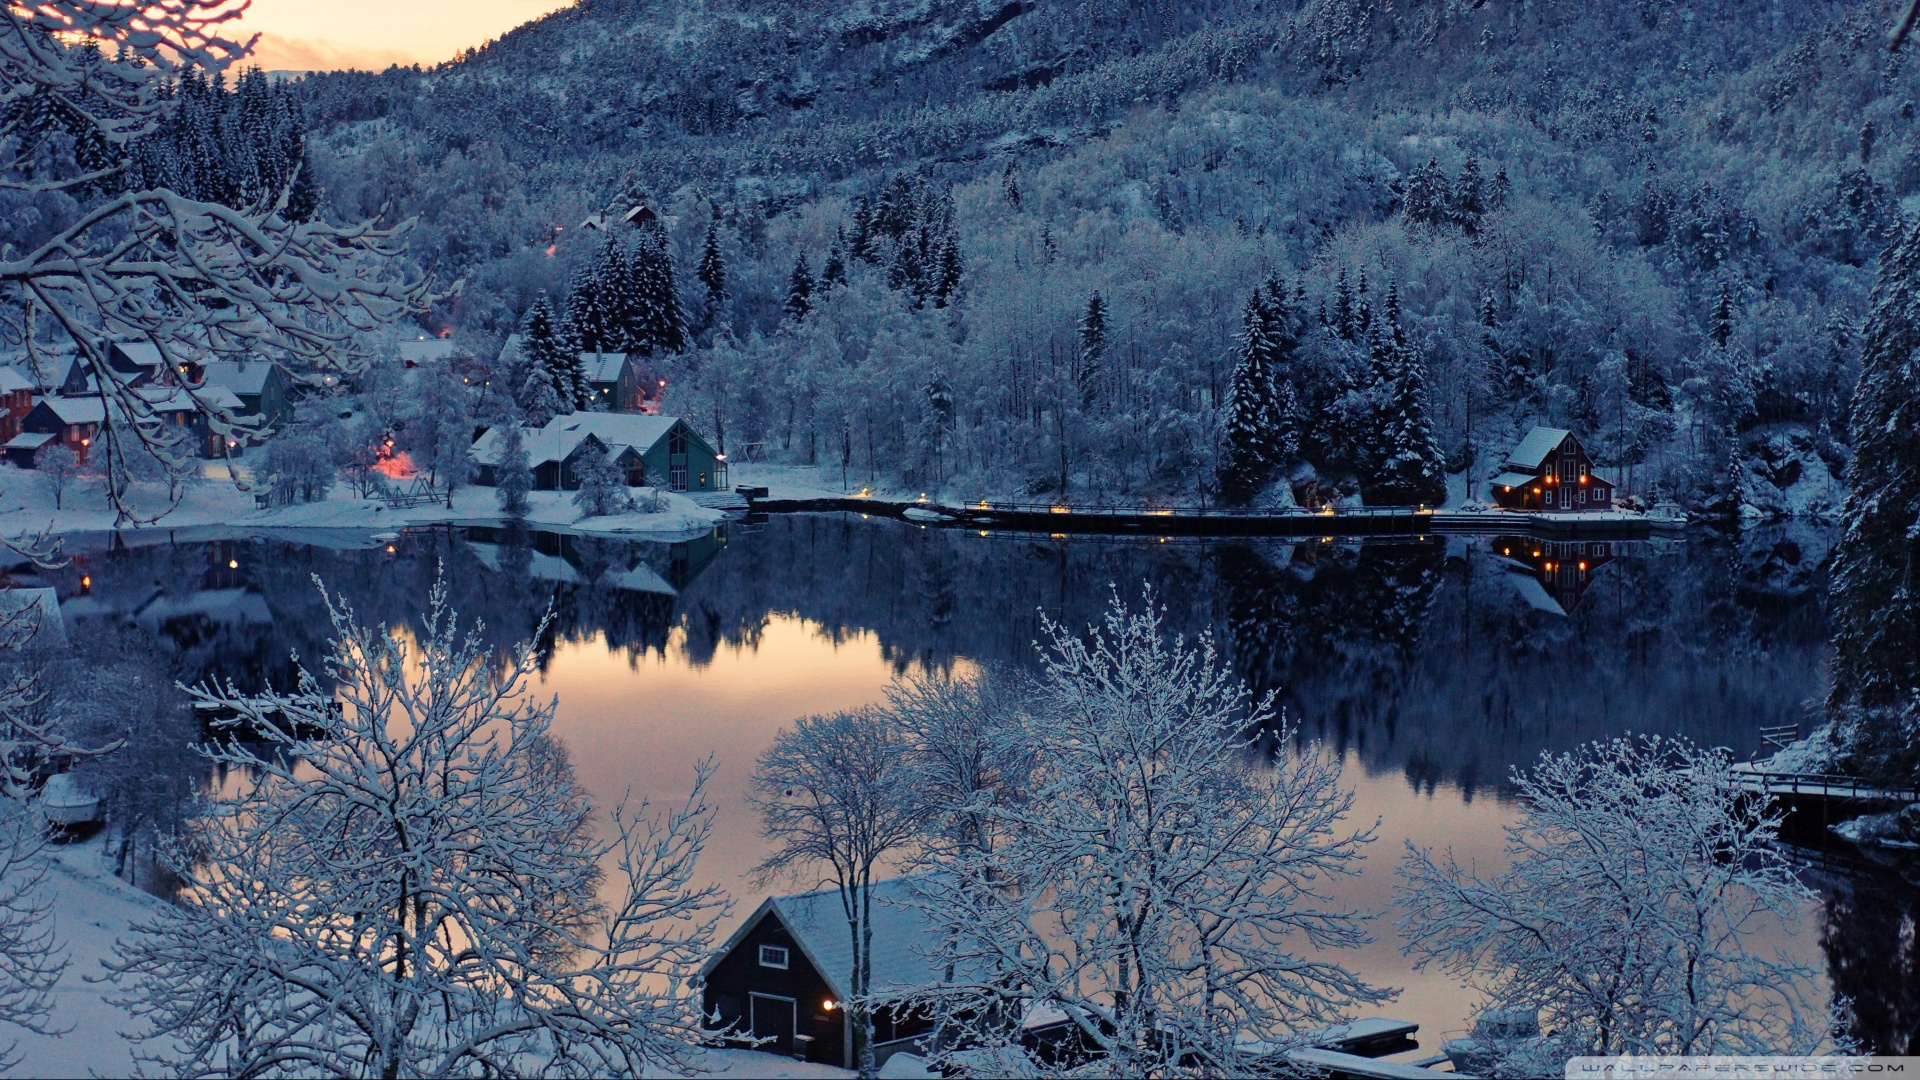 villages in the midst of winter wallpaper dottech midst of winter wallpaper dottech